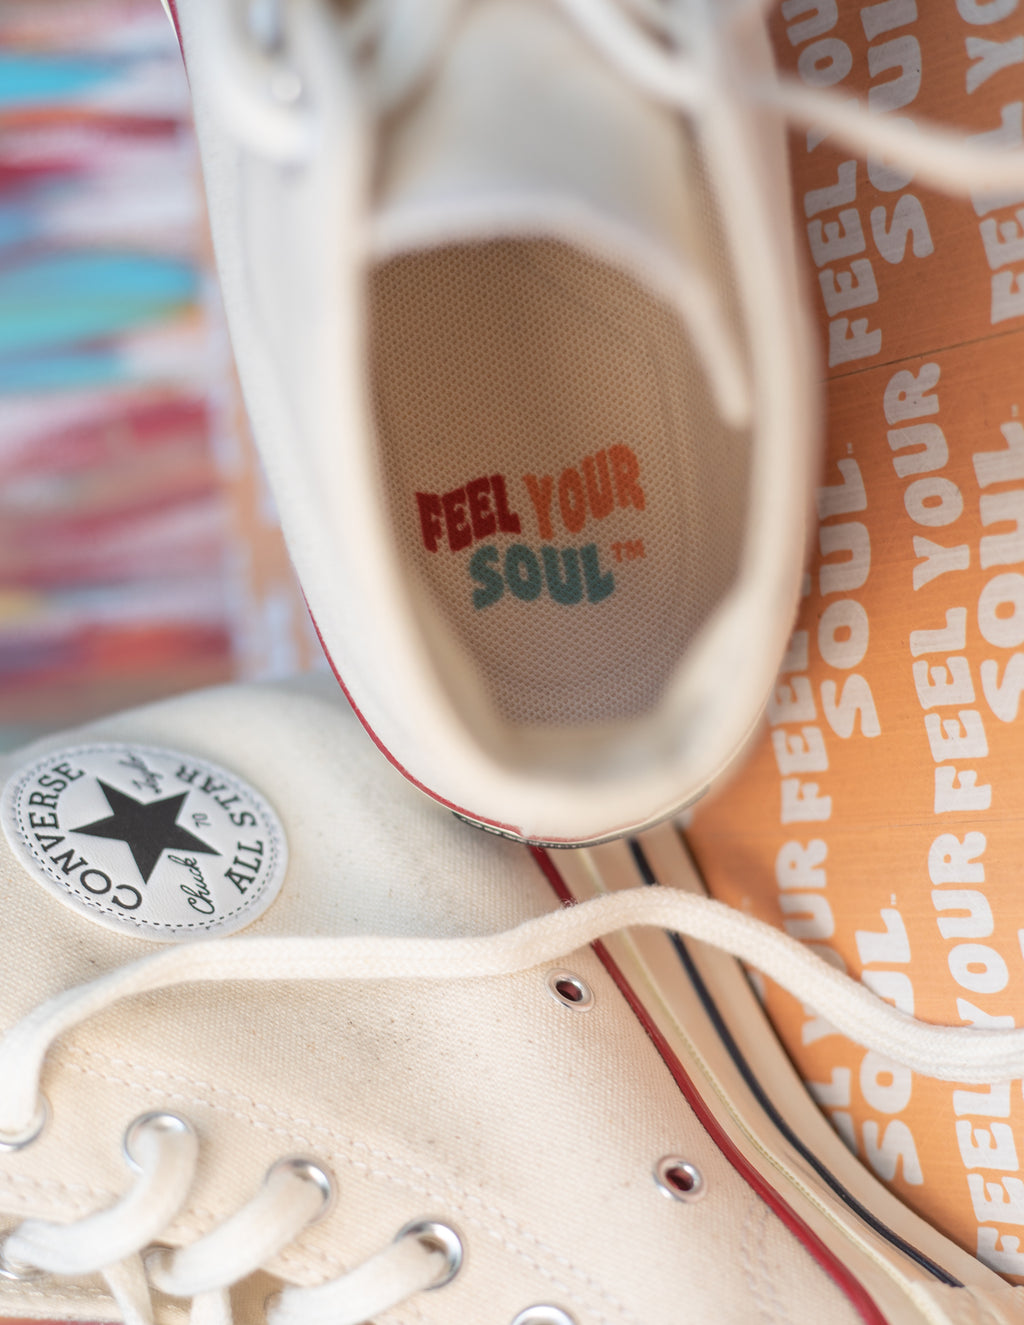 FOOTSOULS for Converse - FEEL YOUR SOUL